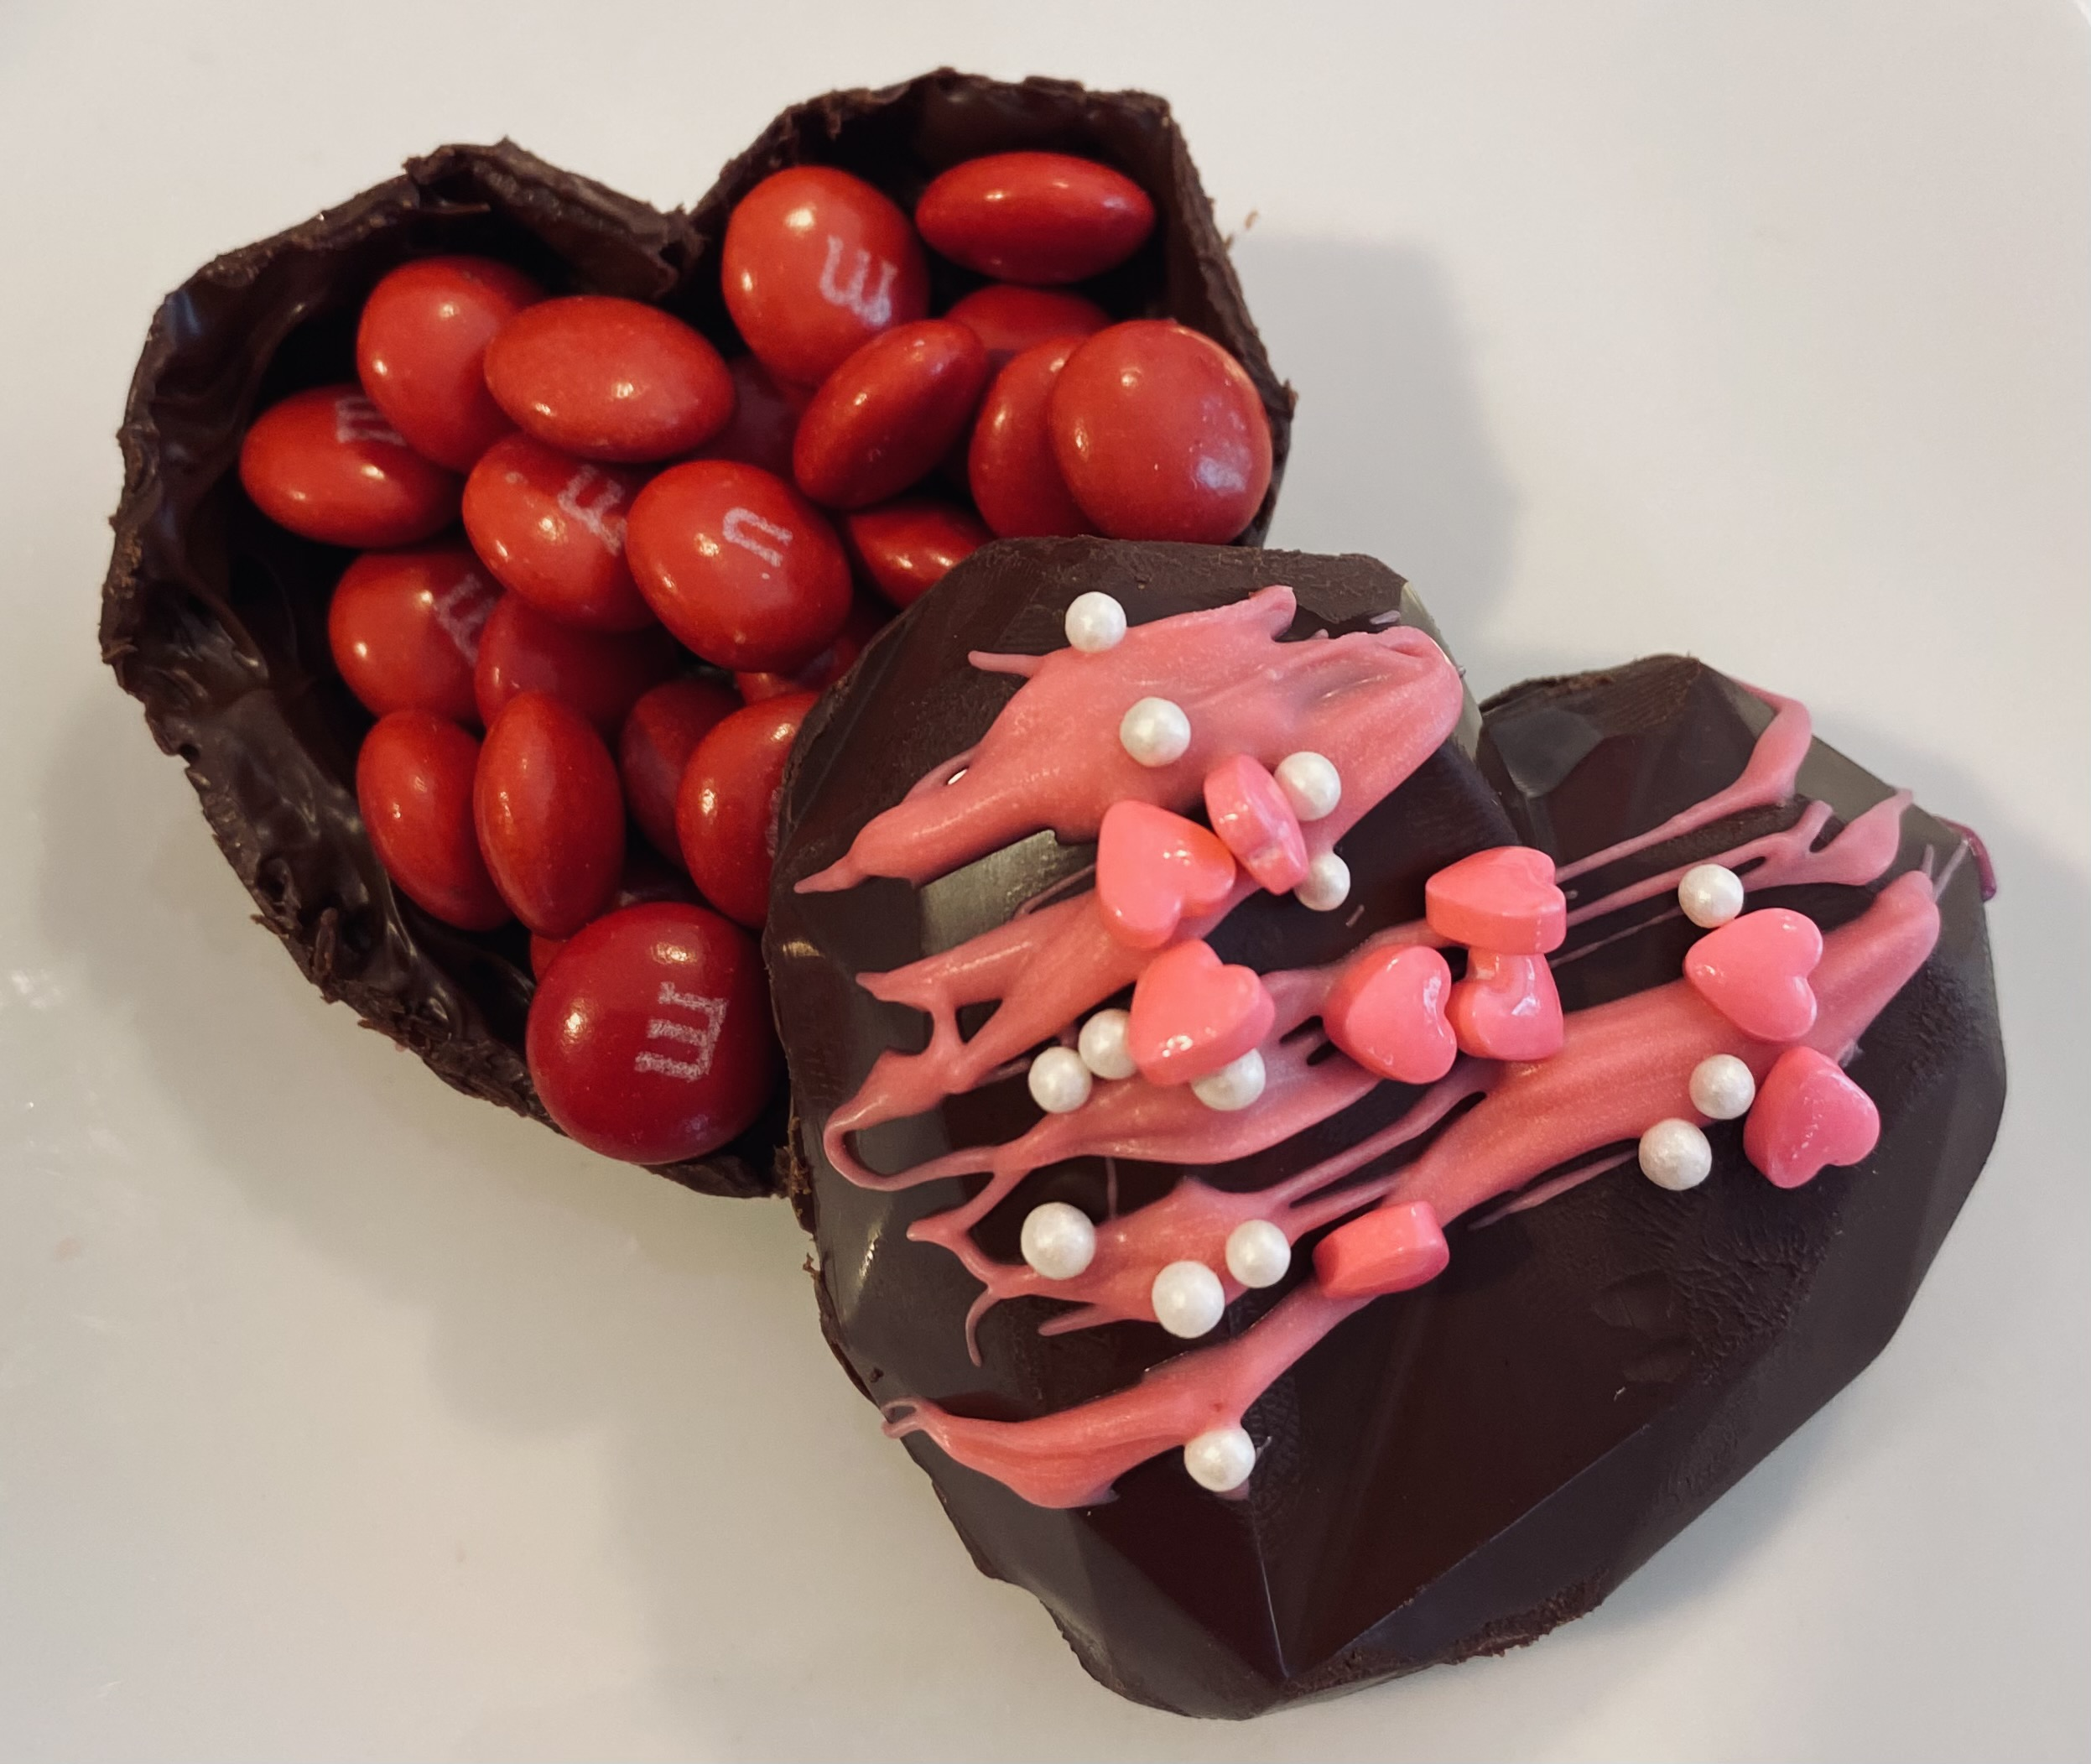 Candy filled Chocolate Heart Box